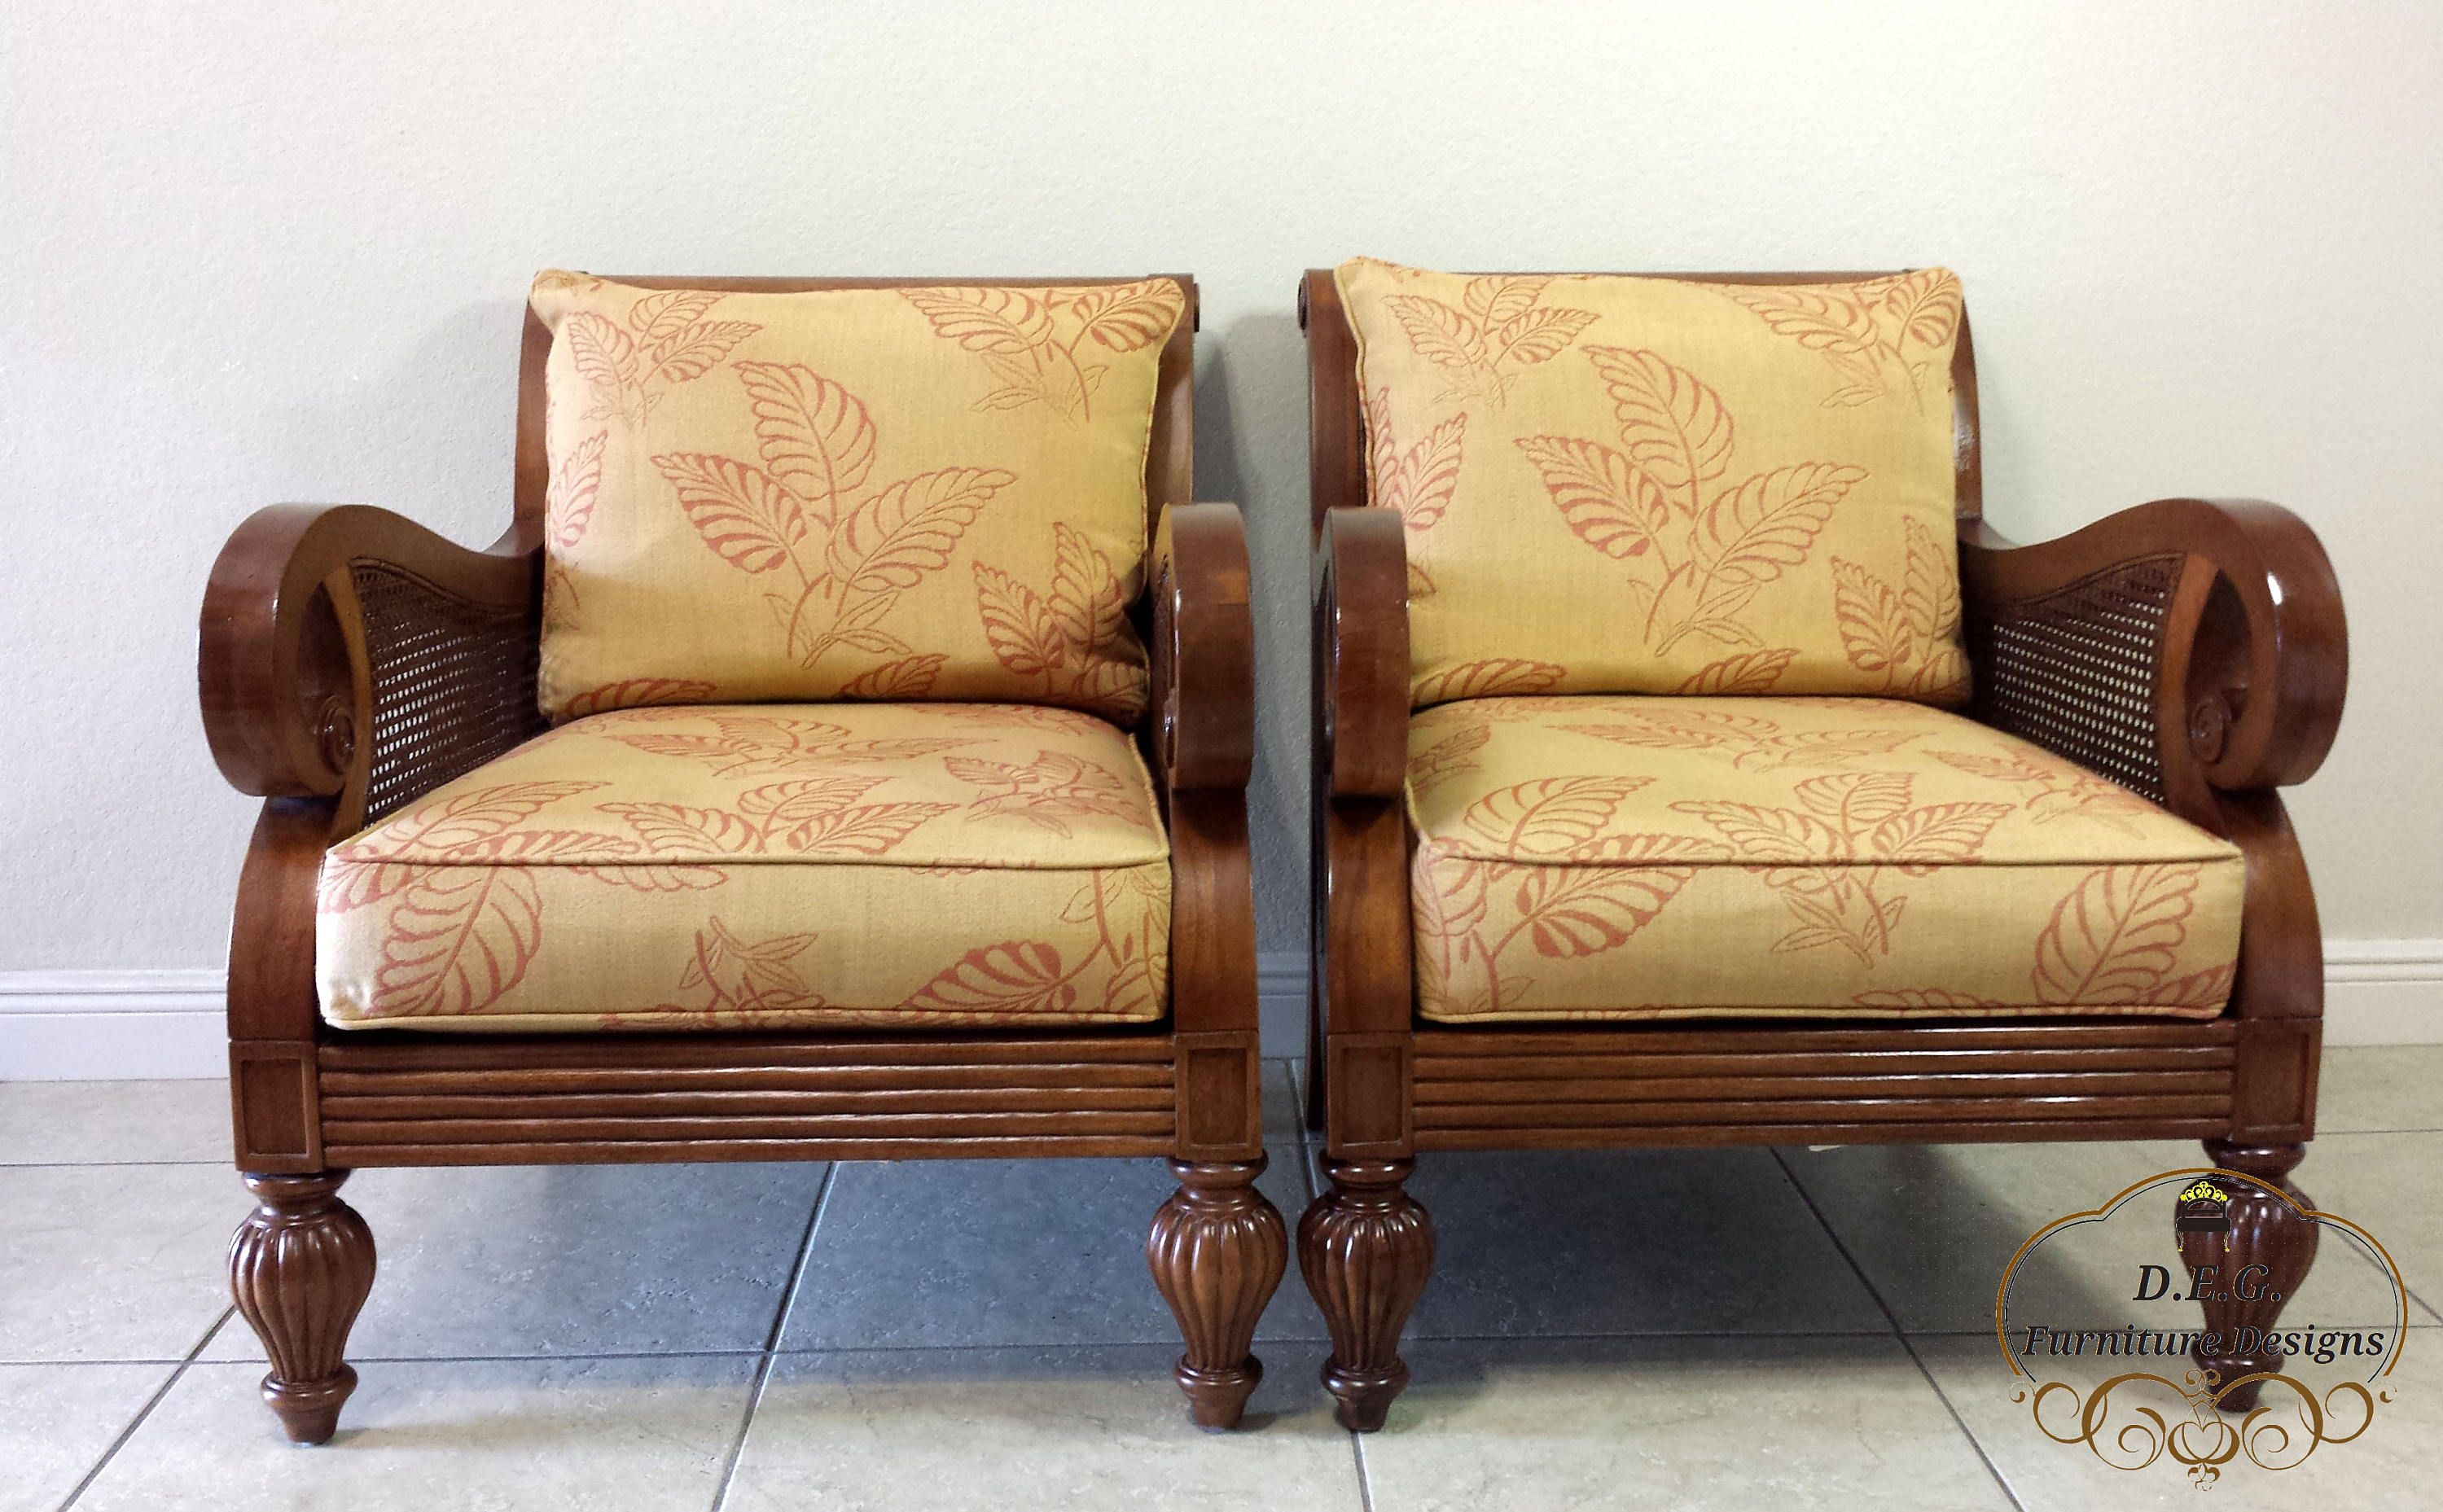 Thomasville Leather Chair Puppy Dog Pair Of Sofa Chairs With Double Cane By Degfurnituredesigns On Etsy